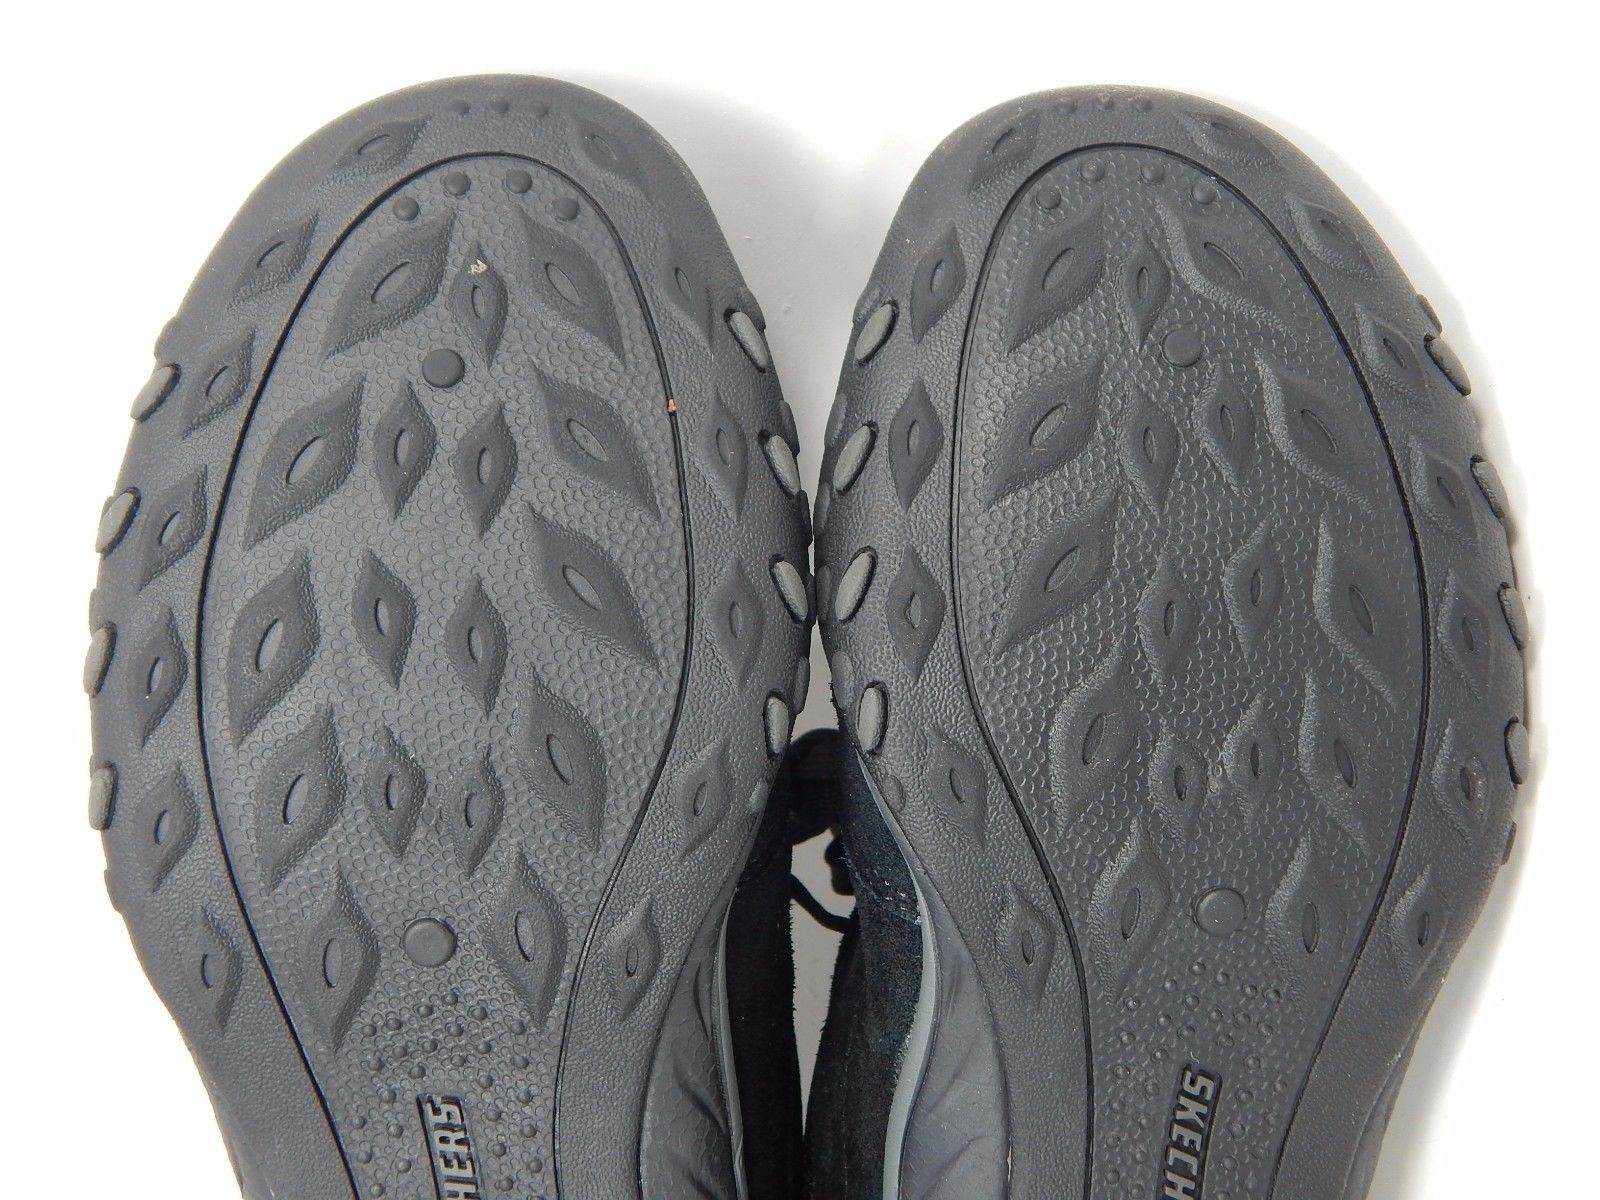 Skechers Relaxed Fit Breath Easy Women's Comfort Shoes Size: US 8 M (B) EU 38